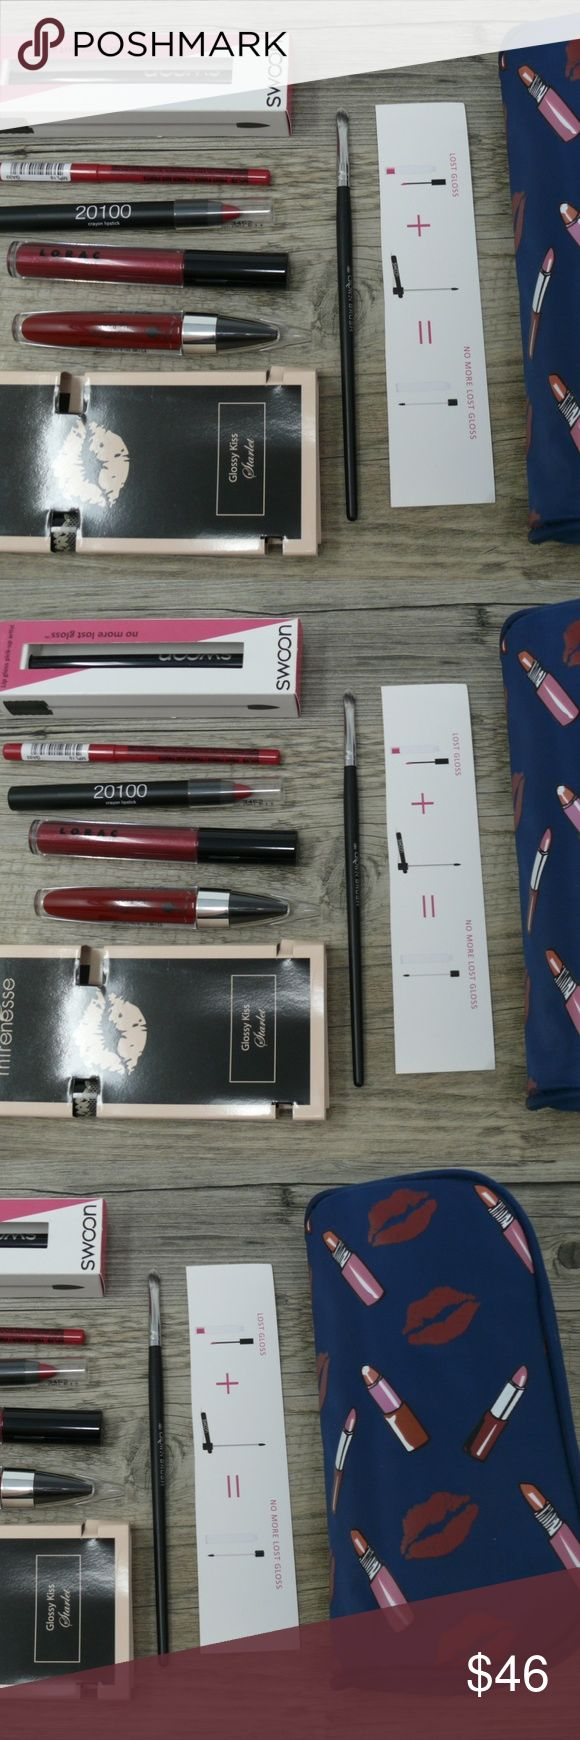 7 Piece Red Lip Collection Gloss Lipstick Bag 7 Item Red Lip Collection + Cosmetic Bag   #1 Swoon Lip Gloss Reusable Wand #2 Mirenesse Lip Bomb Siren Red combines gloss, stain and lacquer all in one. #3 Mirenesee Lip Bomb Glossy Kiss for Lips & Checks #4 LORAC Lip Lustre Gloss: Ruby Lustre, glimmering, glam glosses are paraben-free,  #5 Lord & Berry Crayon Lipstick: Color: Scarlett 3452 (red) #6 NYX Retractable Color: MPL15  Fruit Punch #7 Crown Brush Lip Liner Brush + Makeup Bag  100% nylon…